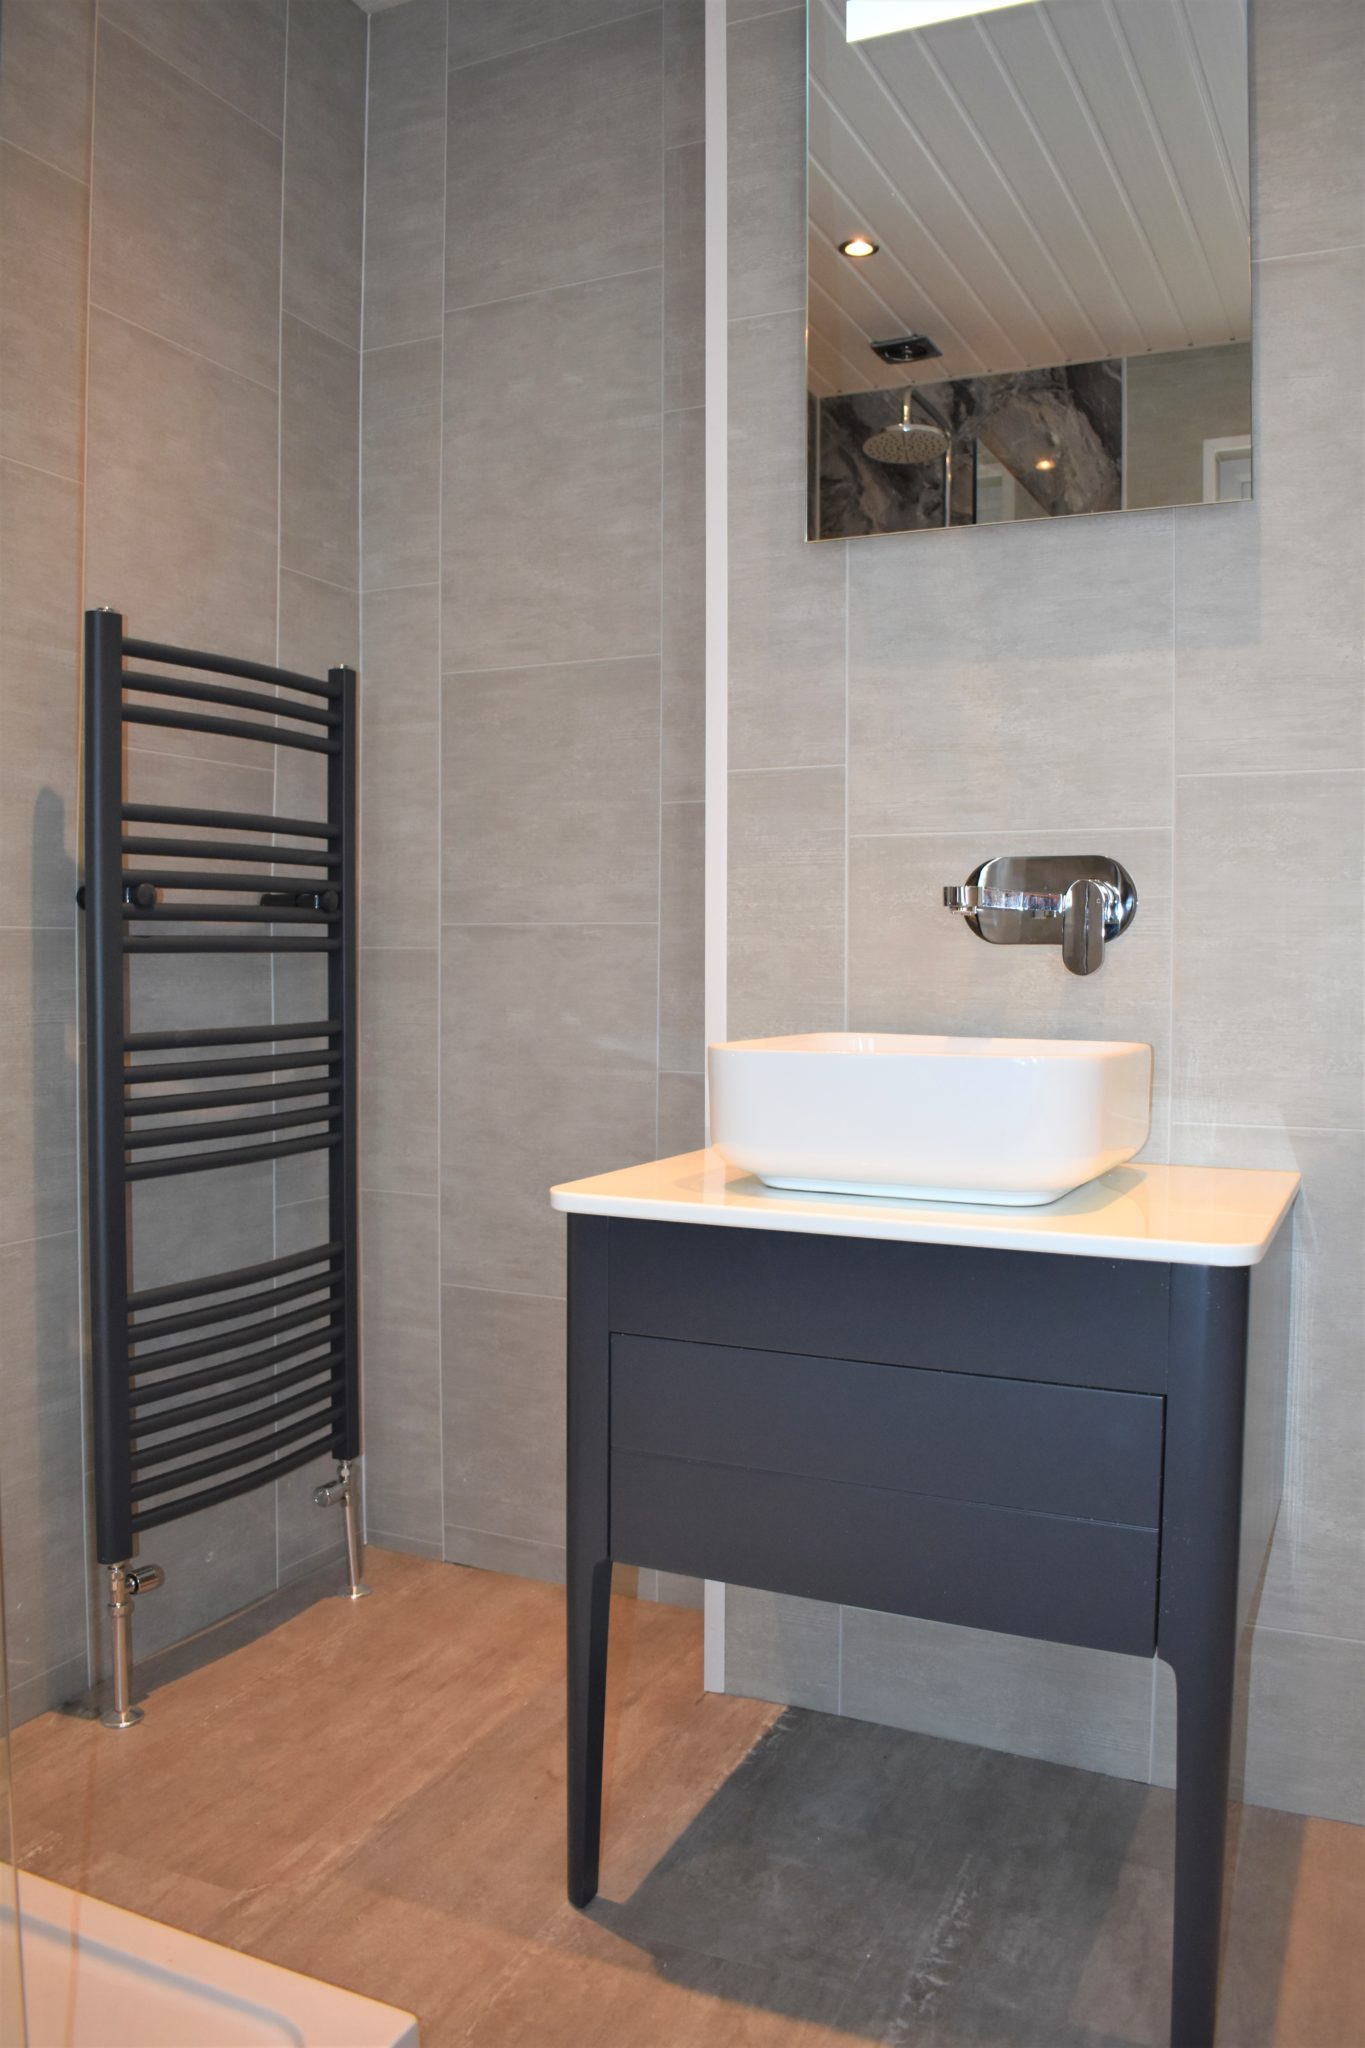 Contemporary vanity unit